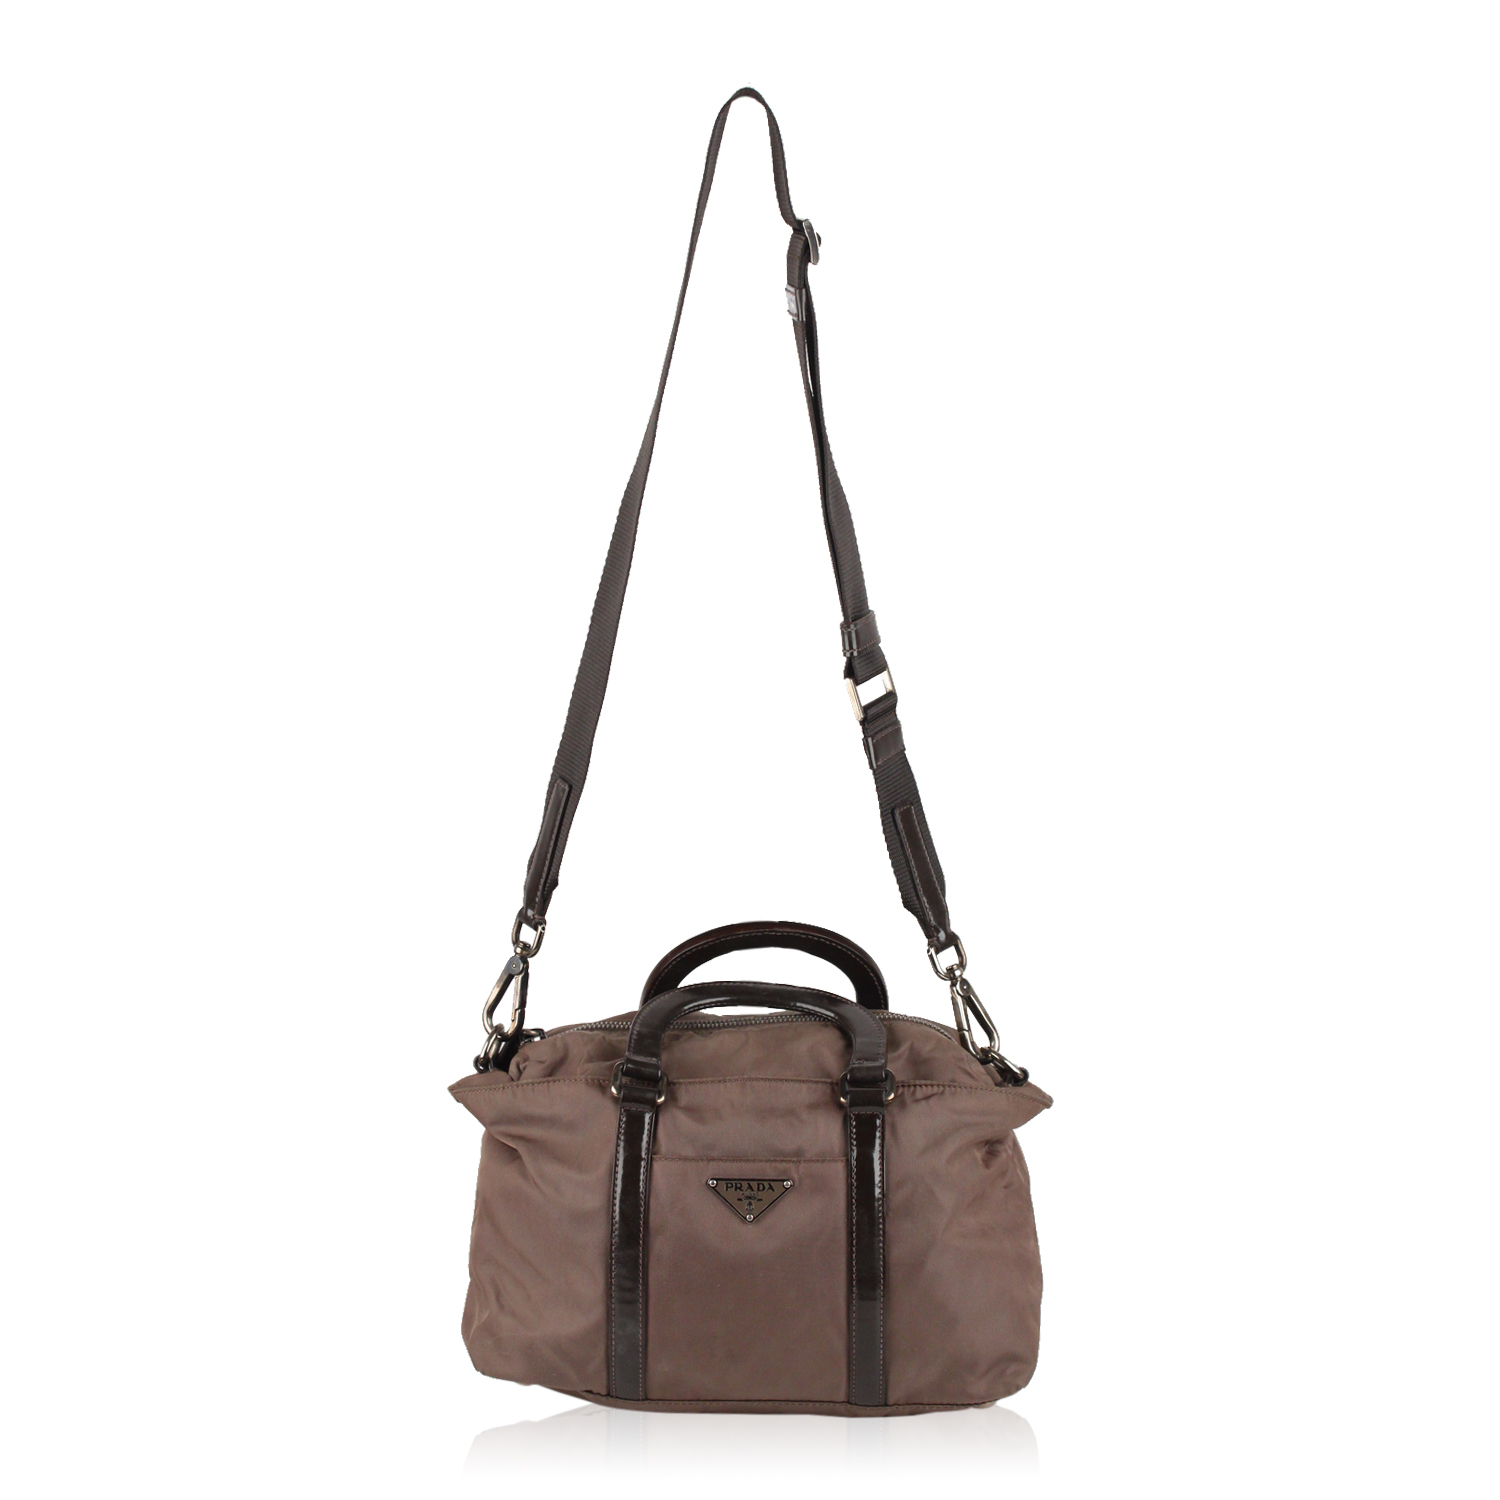 7bb356e0be14 PRADA taupe Satchel bag in Nylon  Vela  canvas with leather trim and  handles. It features front and rear open pockets